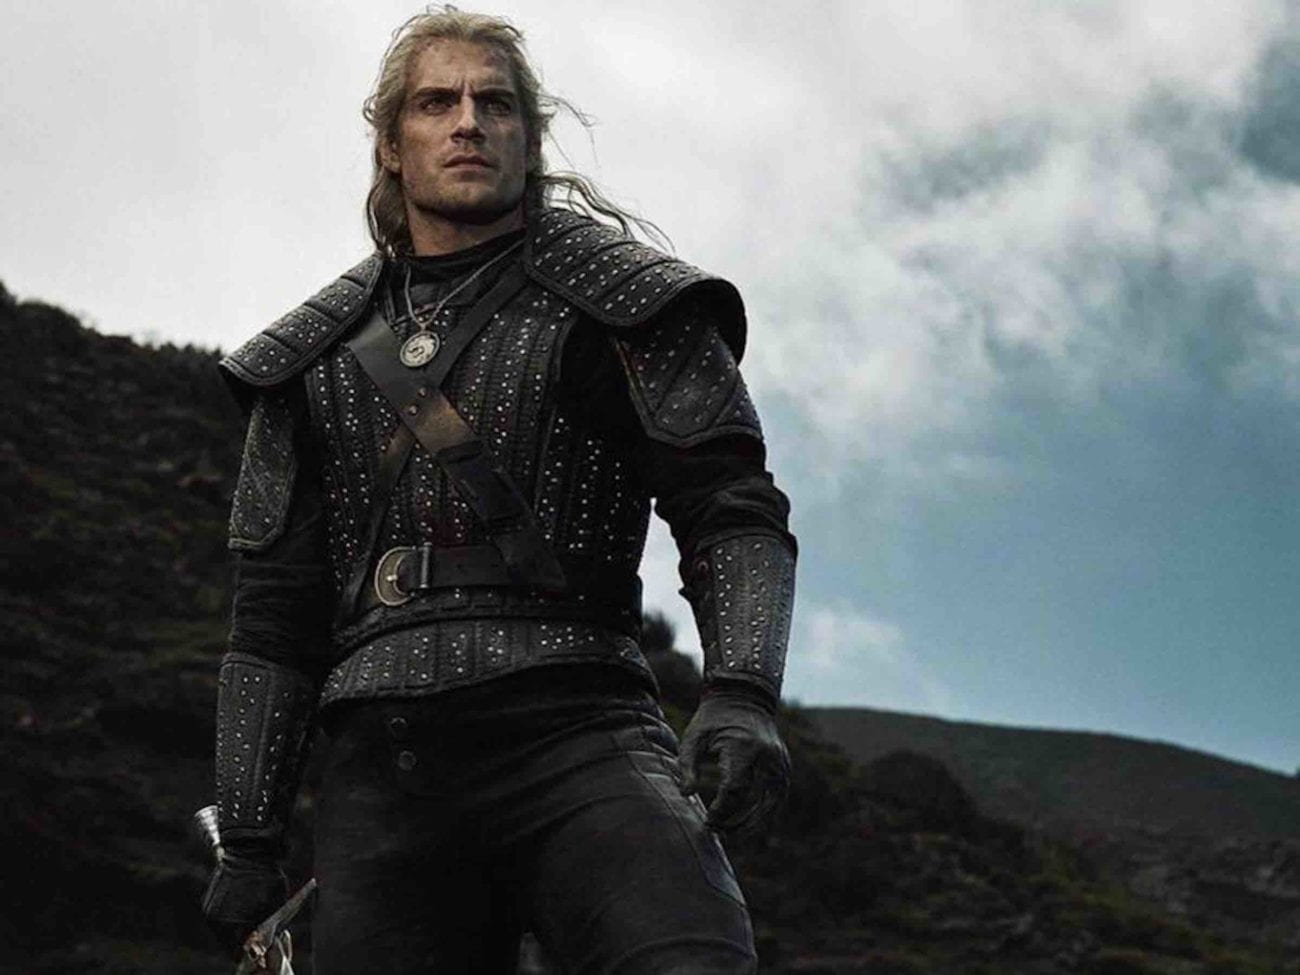 'The Witcher' was first a series of novels, then a series of video games, and now a television show, and each version has its own differences.